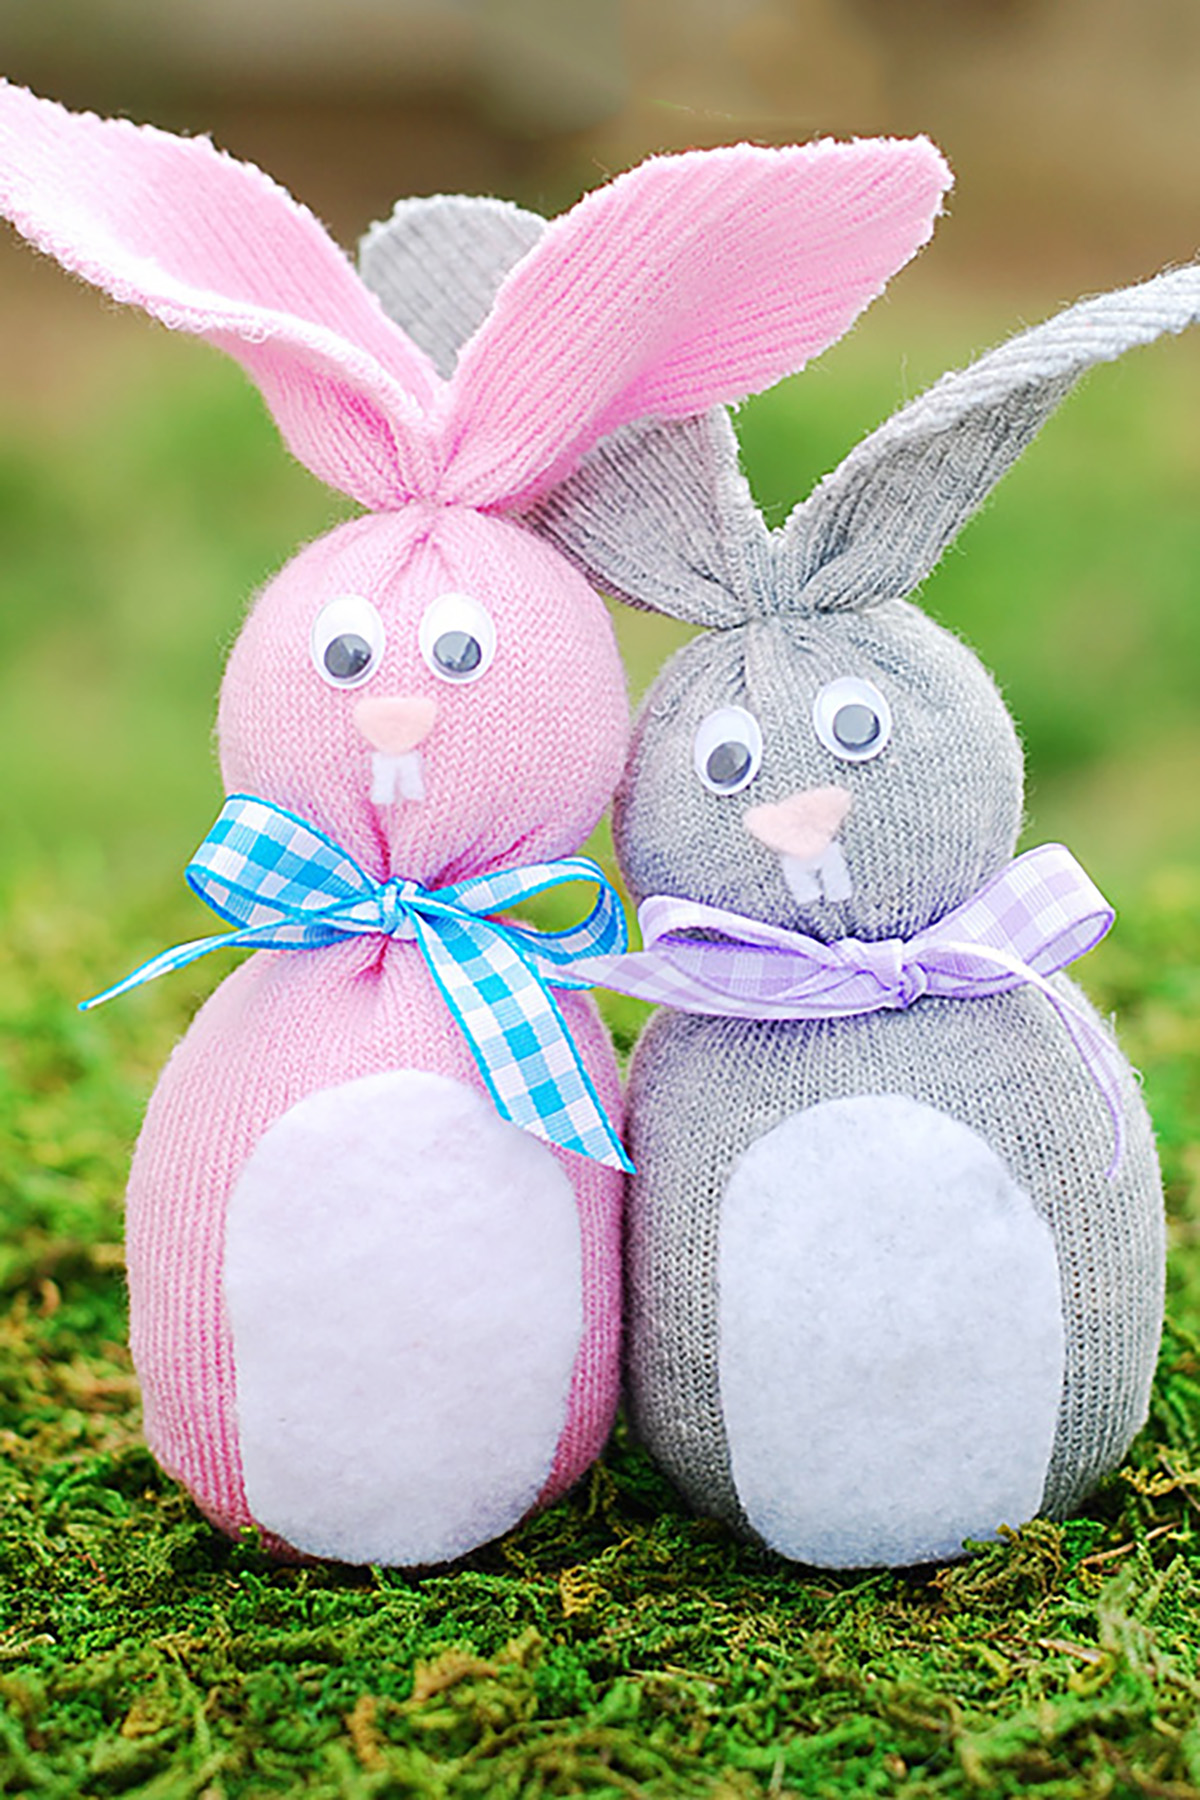 60 easy easter crafts ideas for easter diy decorations gifts 60 easy easter crafts ideas for easter diy decorations gifts country living negle Gallery